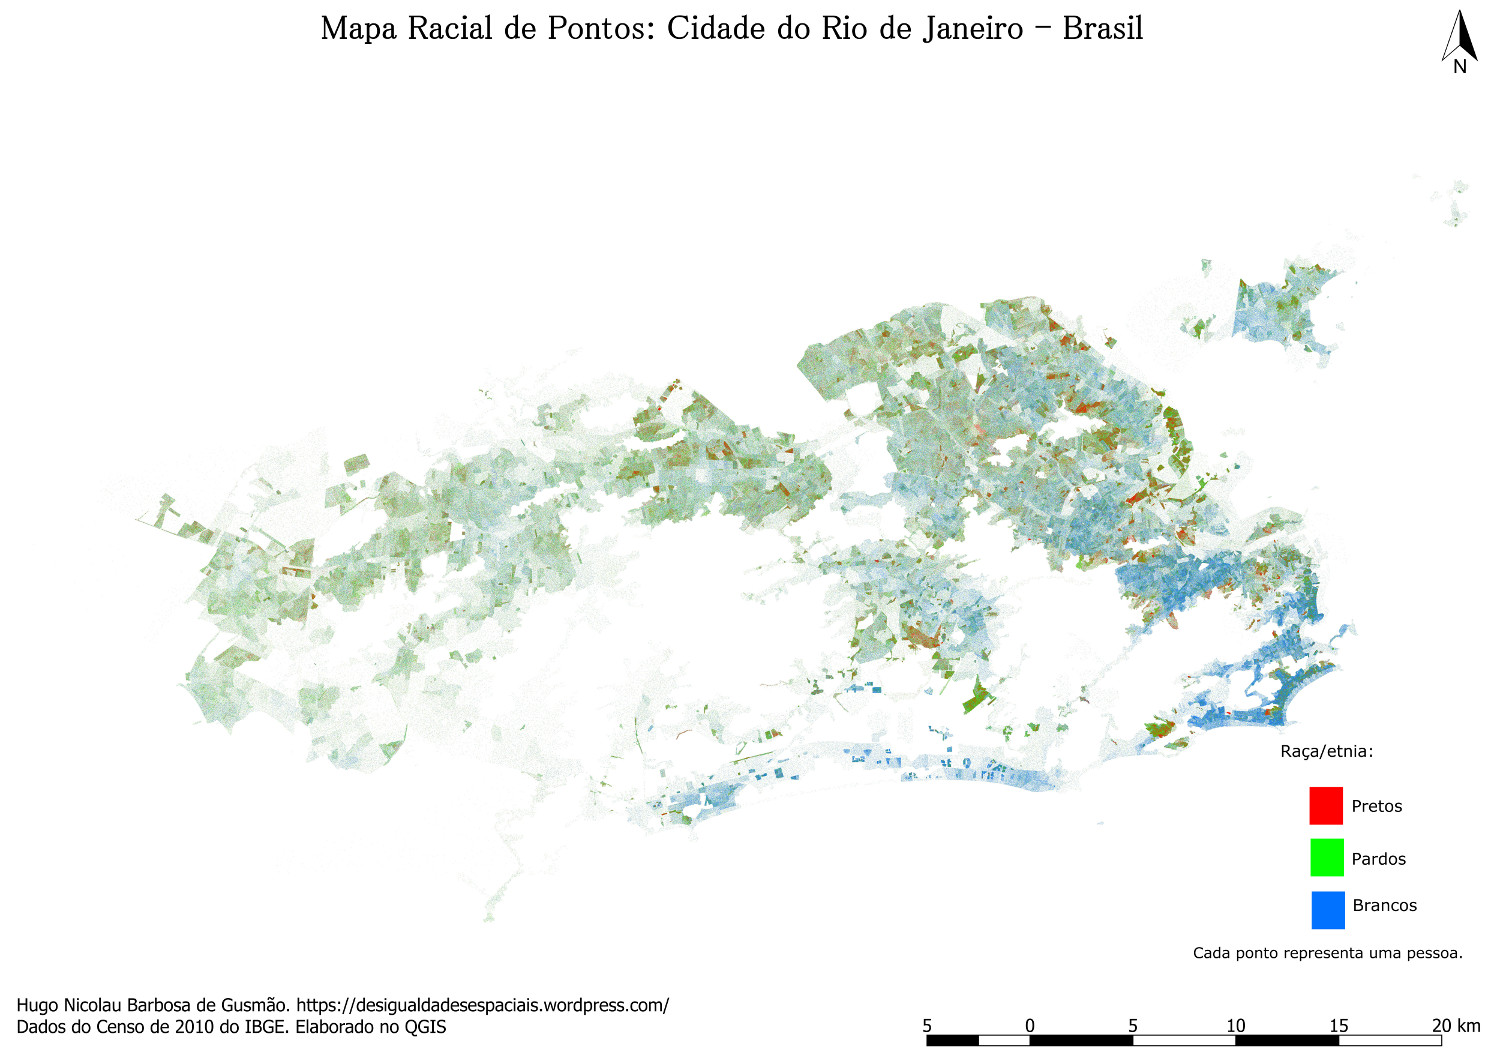 Map showing racial distribution of whites, browns and blacks in the city of Rio de Janeiro